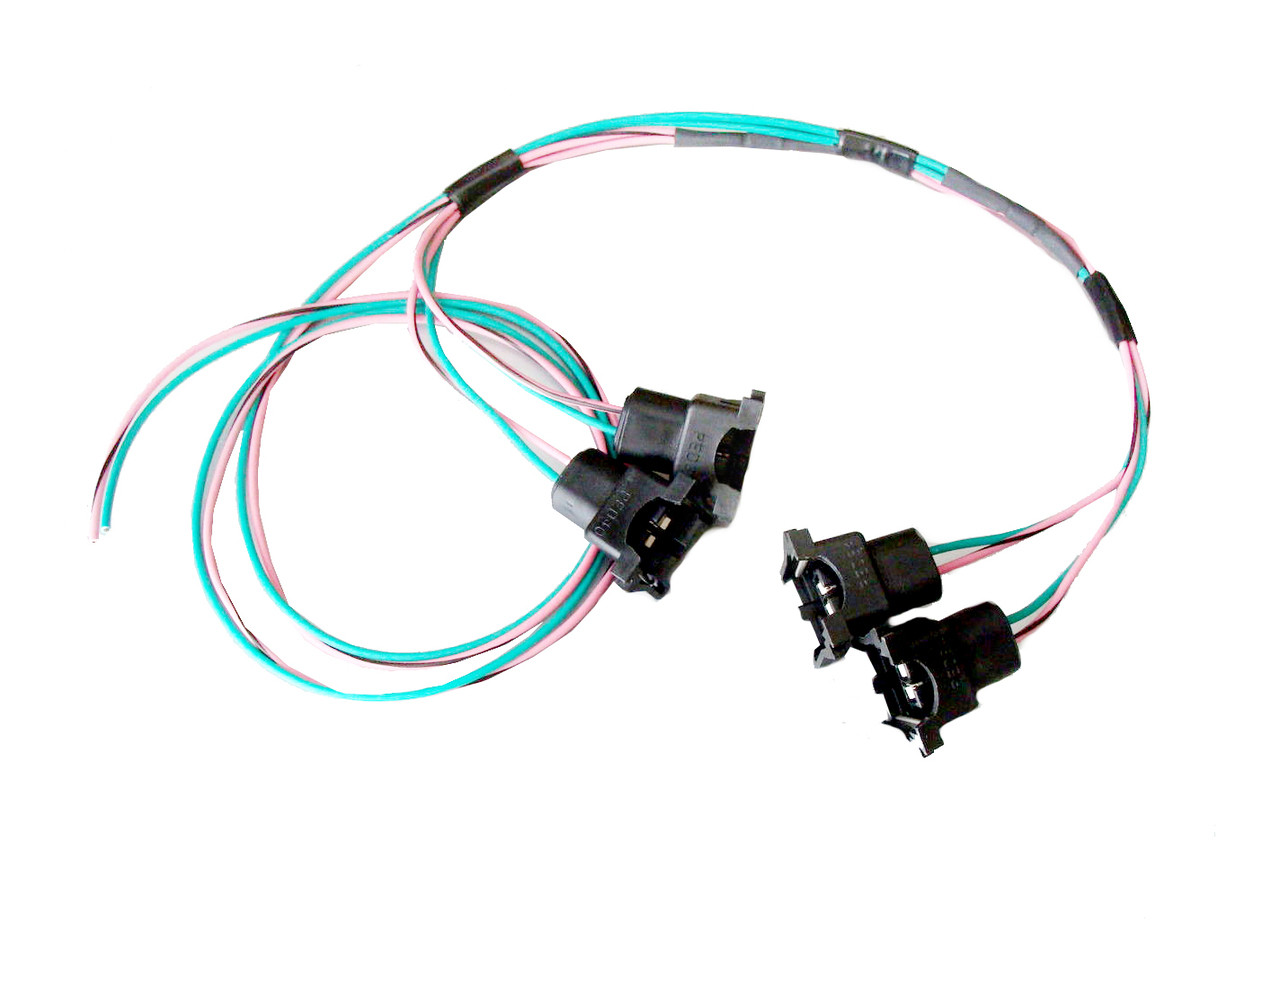 Lt1 Wiring Harness Stand Alone : Stand alone lt wiring harness ls